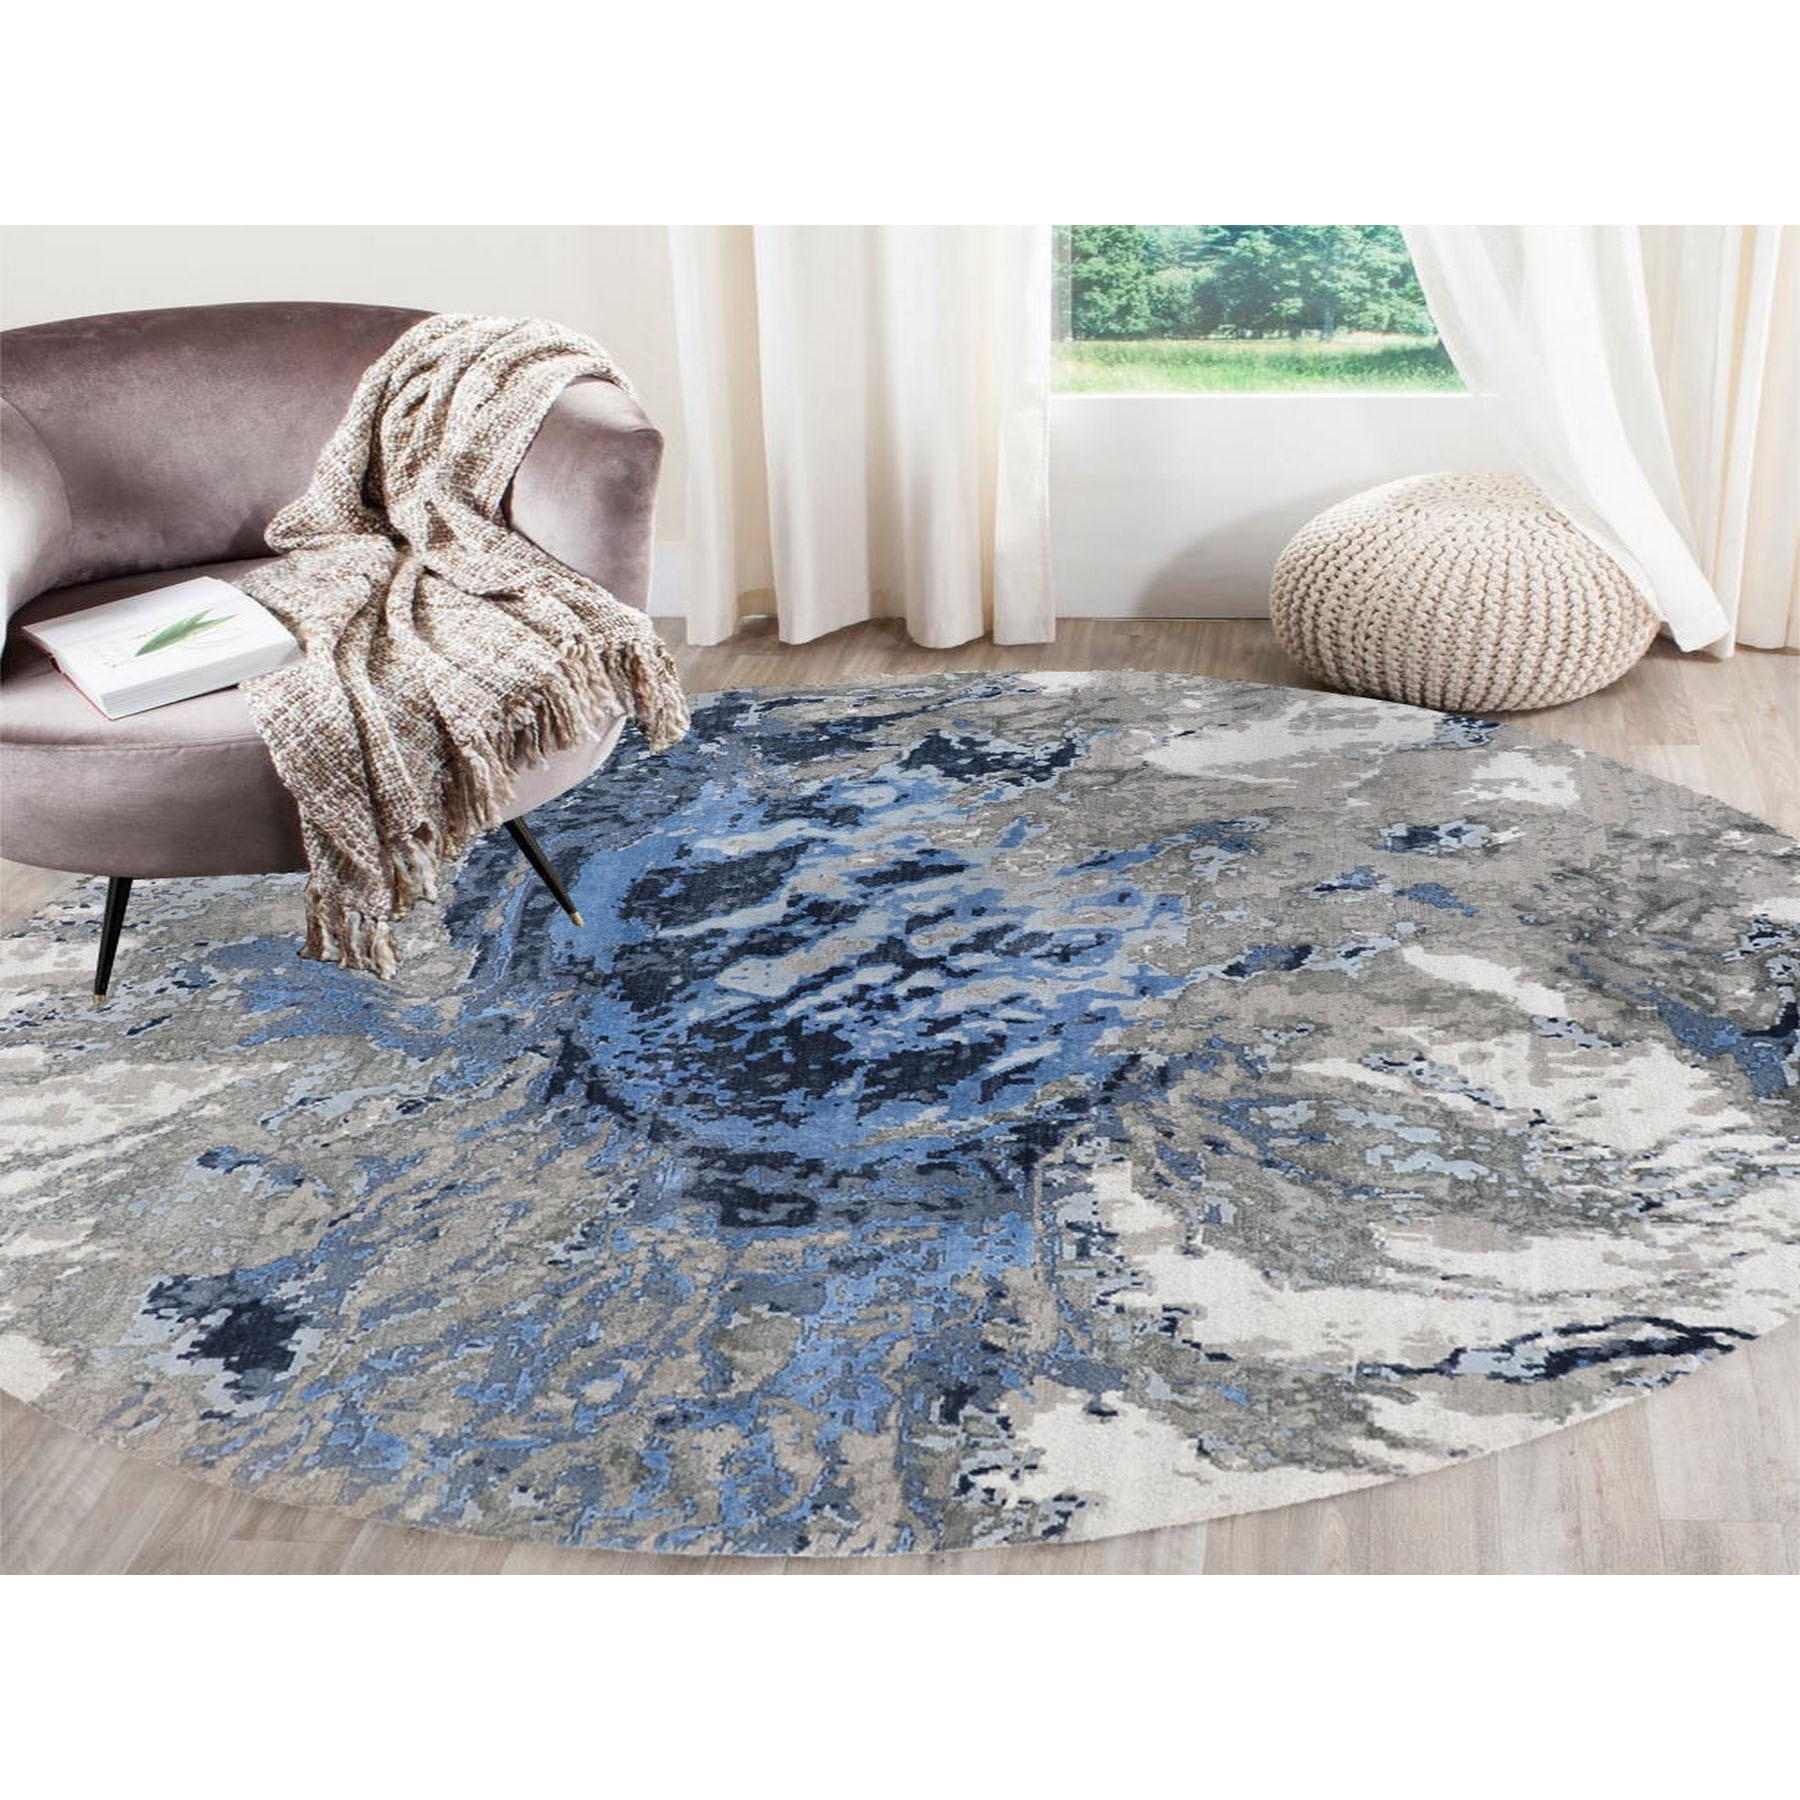 8'x8' Round Abstract Design Wool And Silk Hi-low Pile Hand Knotted Oriental Rug